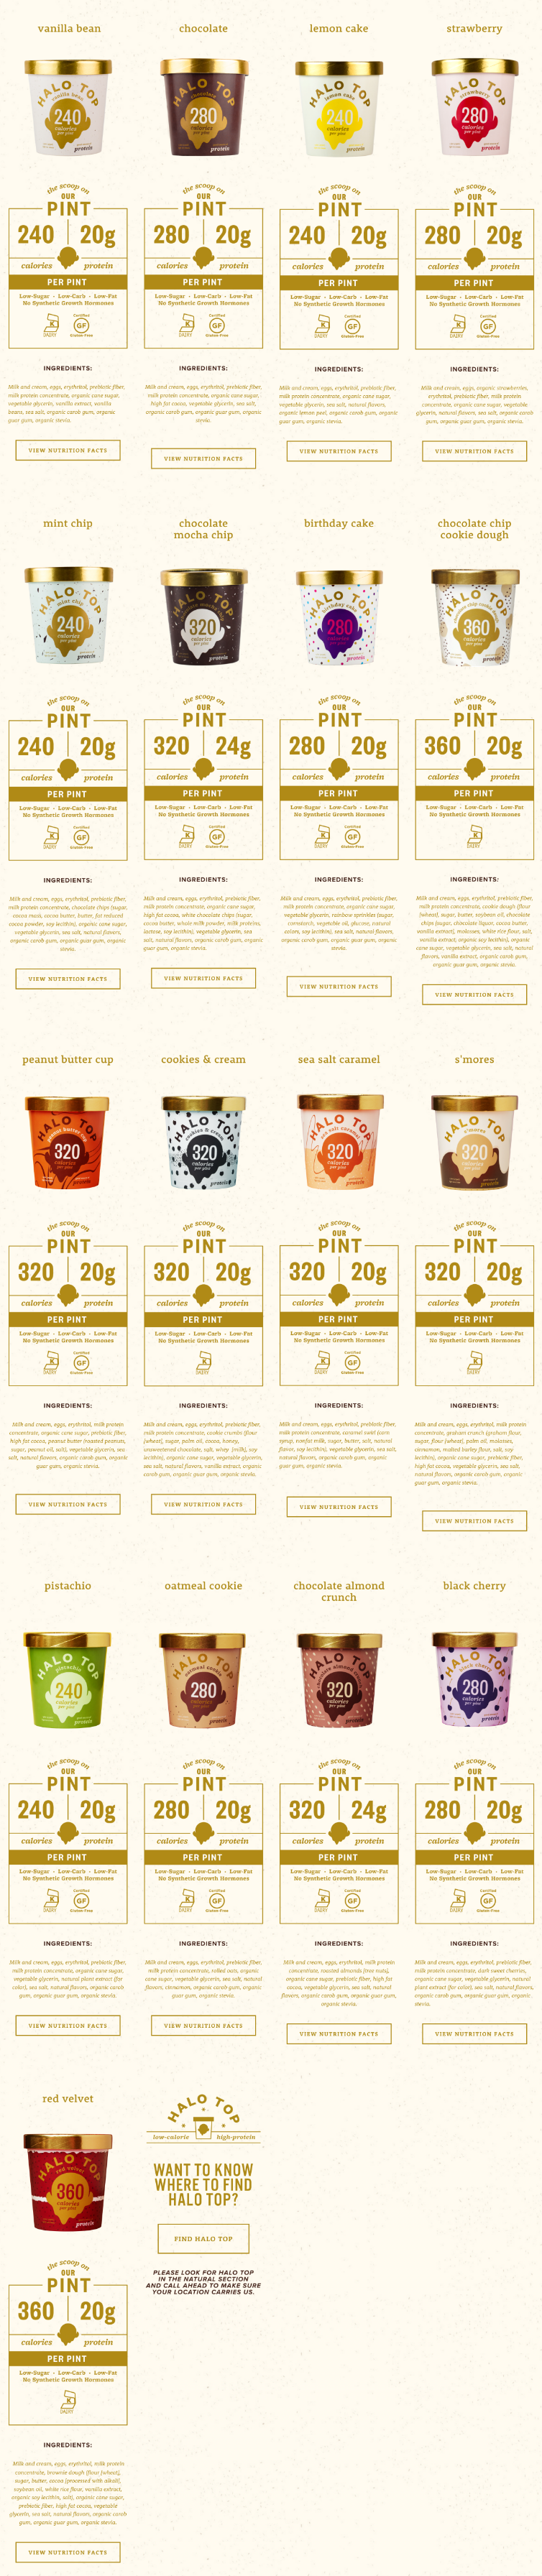 Halo Top Sets Itself Apart As It Lets You Choose From Over 17 Different Flavors That Can